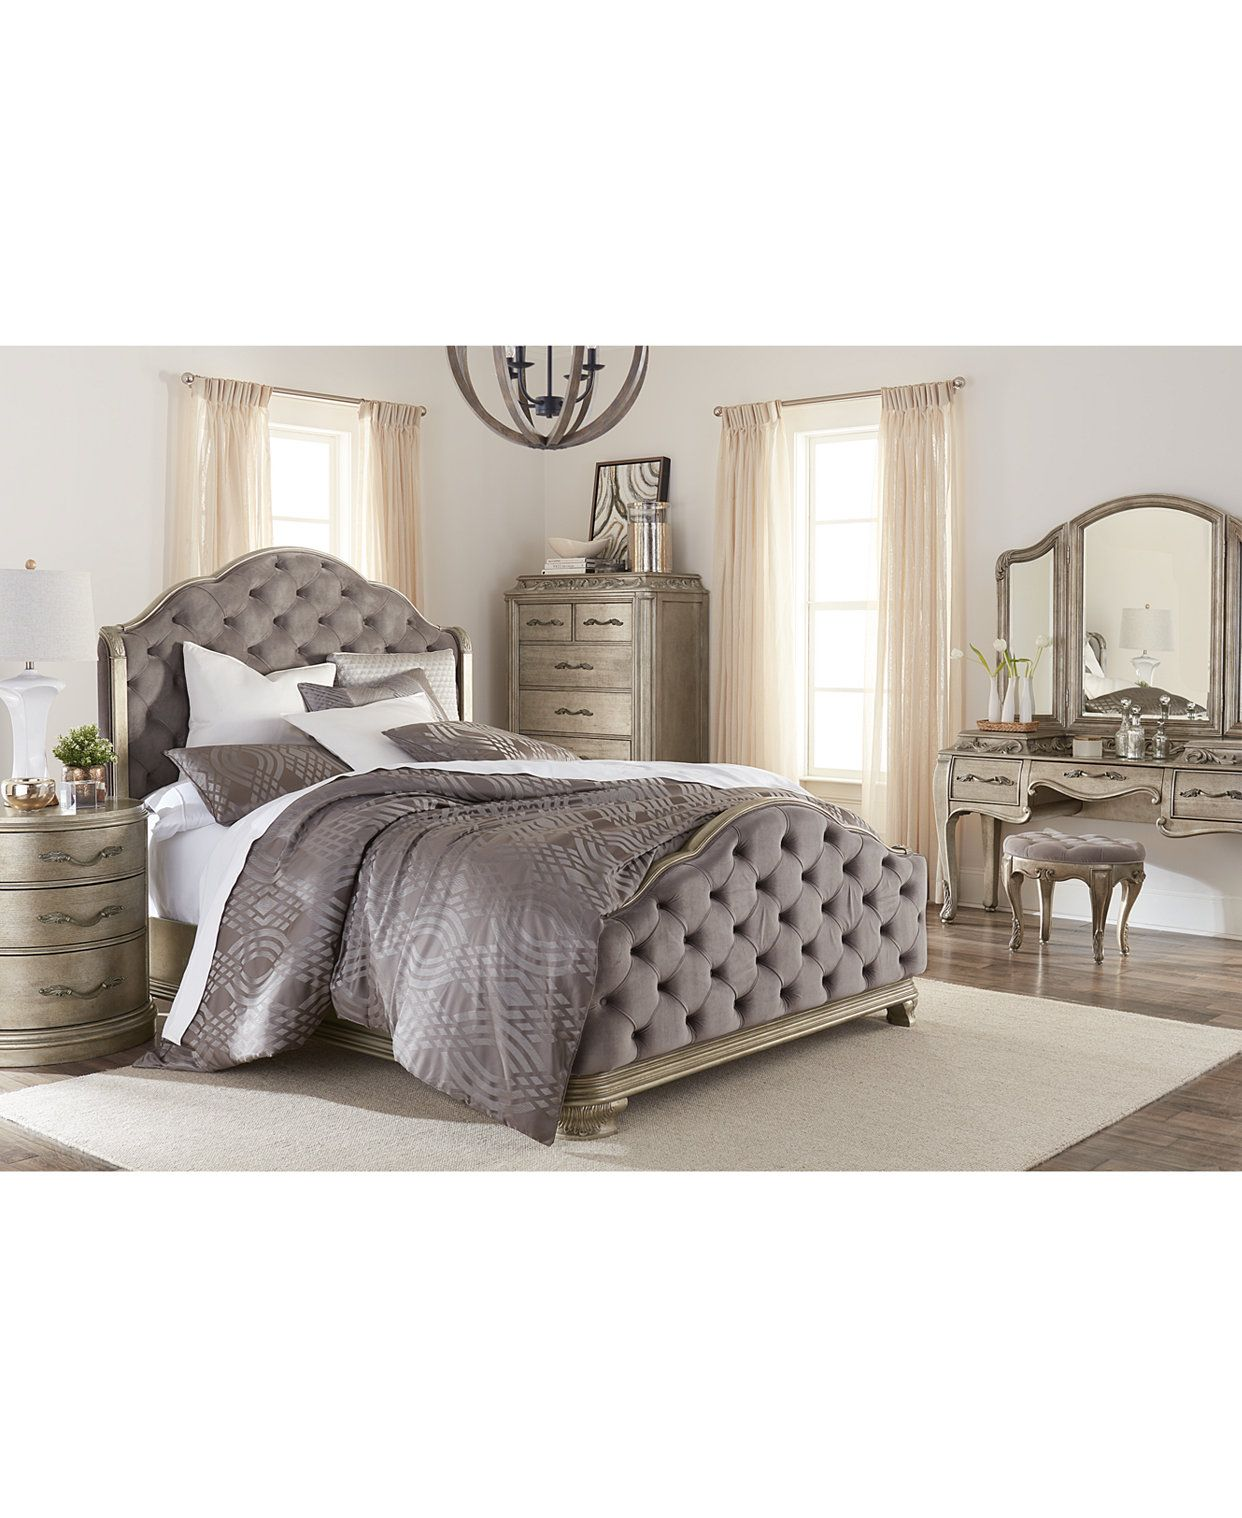 Furniture Zarina Bedroom Collection Reviews Macy S Collections